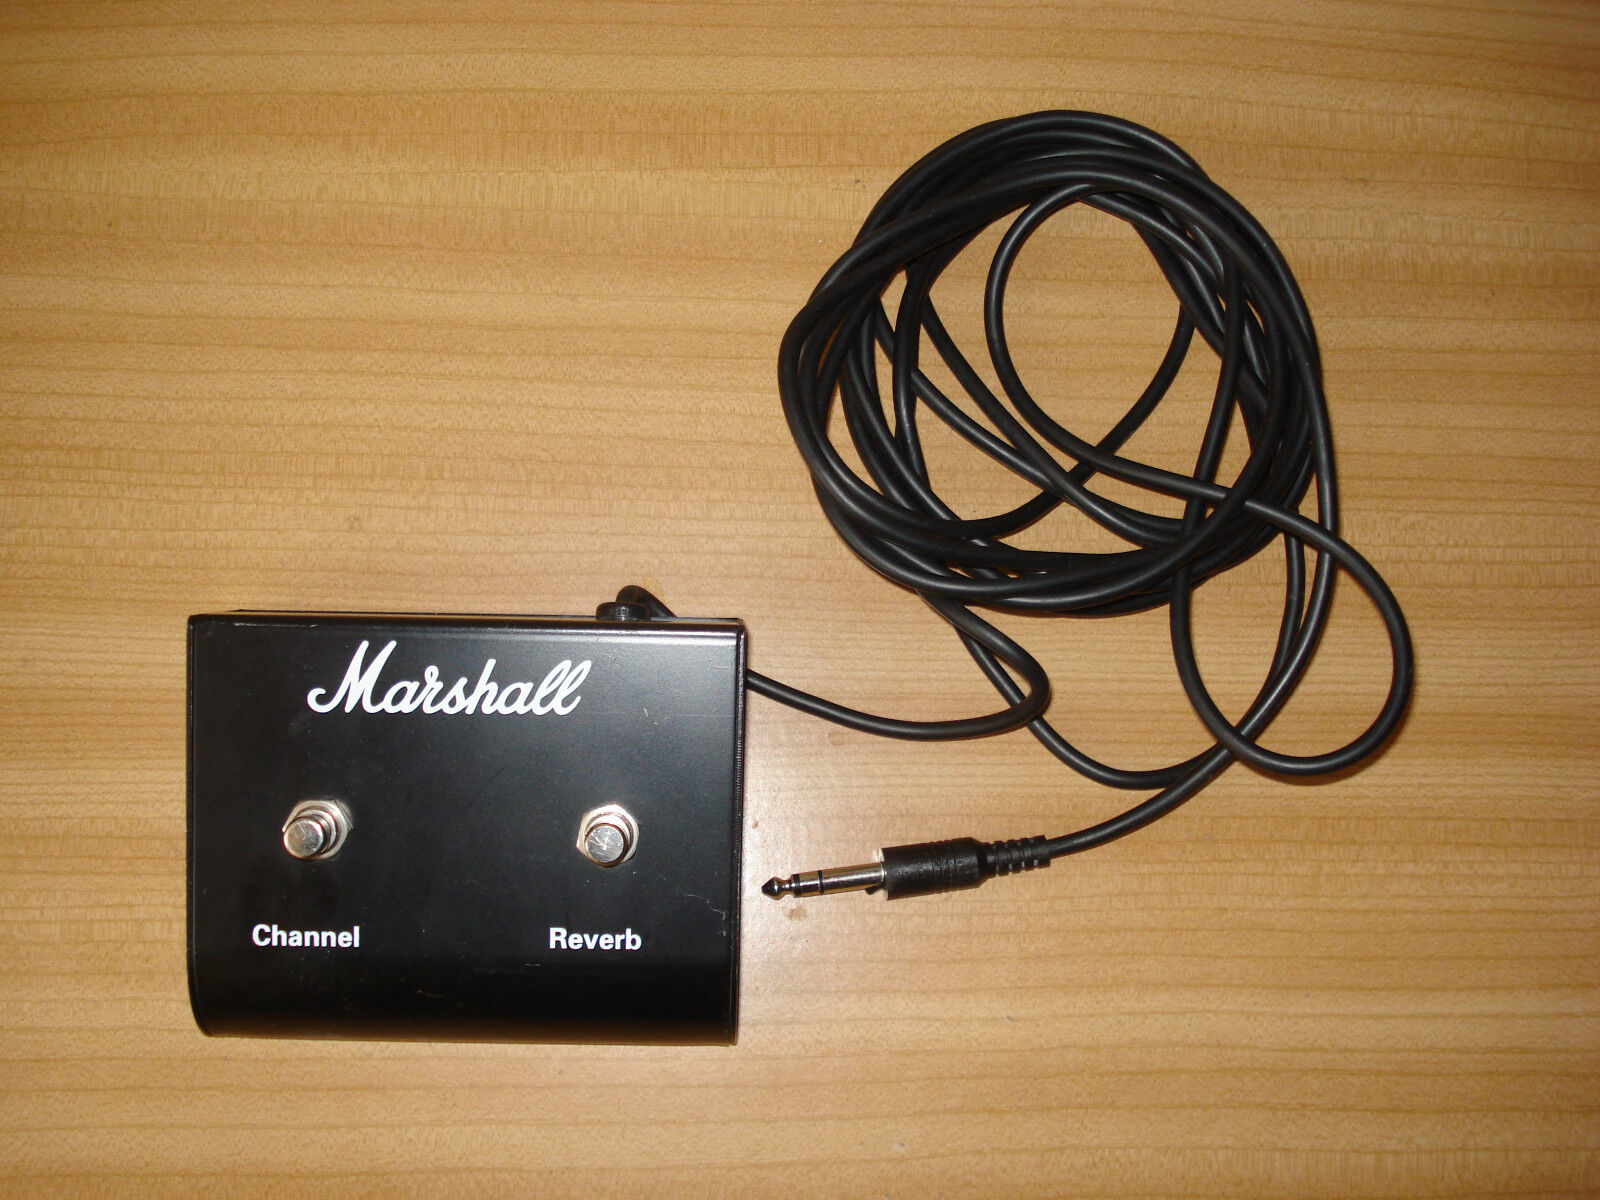 Marshall foot pedal fusspedal channel reverb